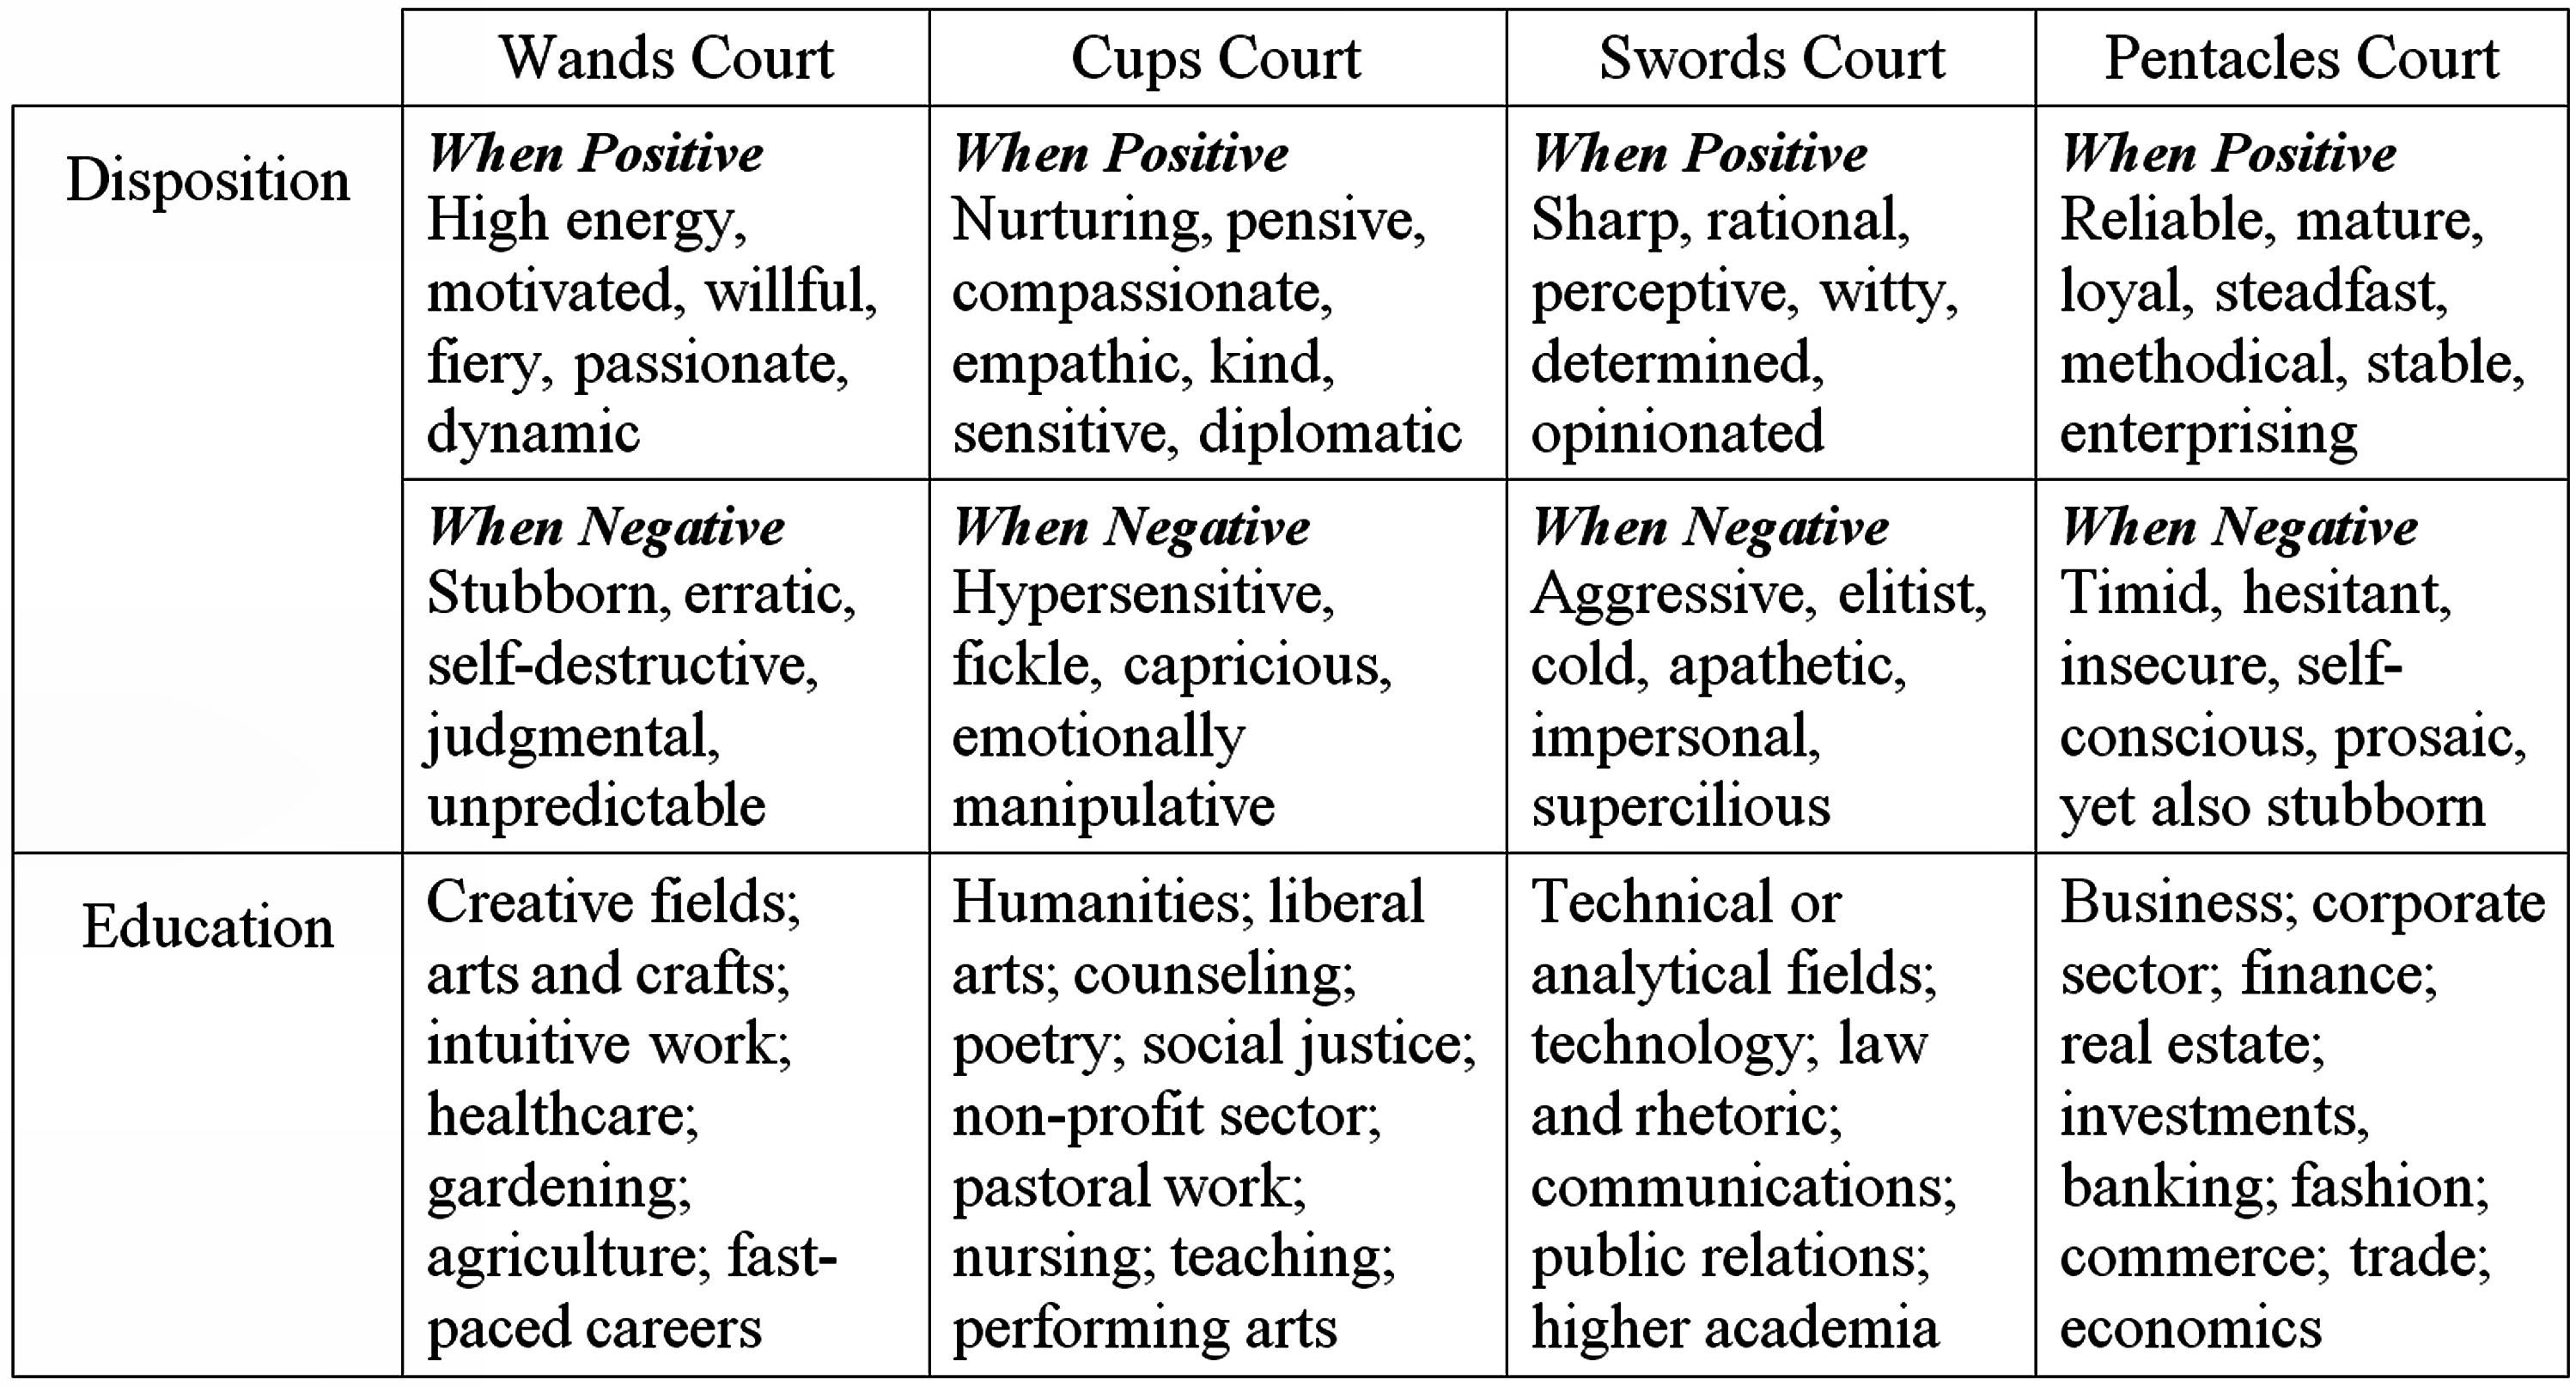 2014.10.31 For BiddyTarot Blog - 05 Dispos and Educ in Courts